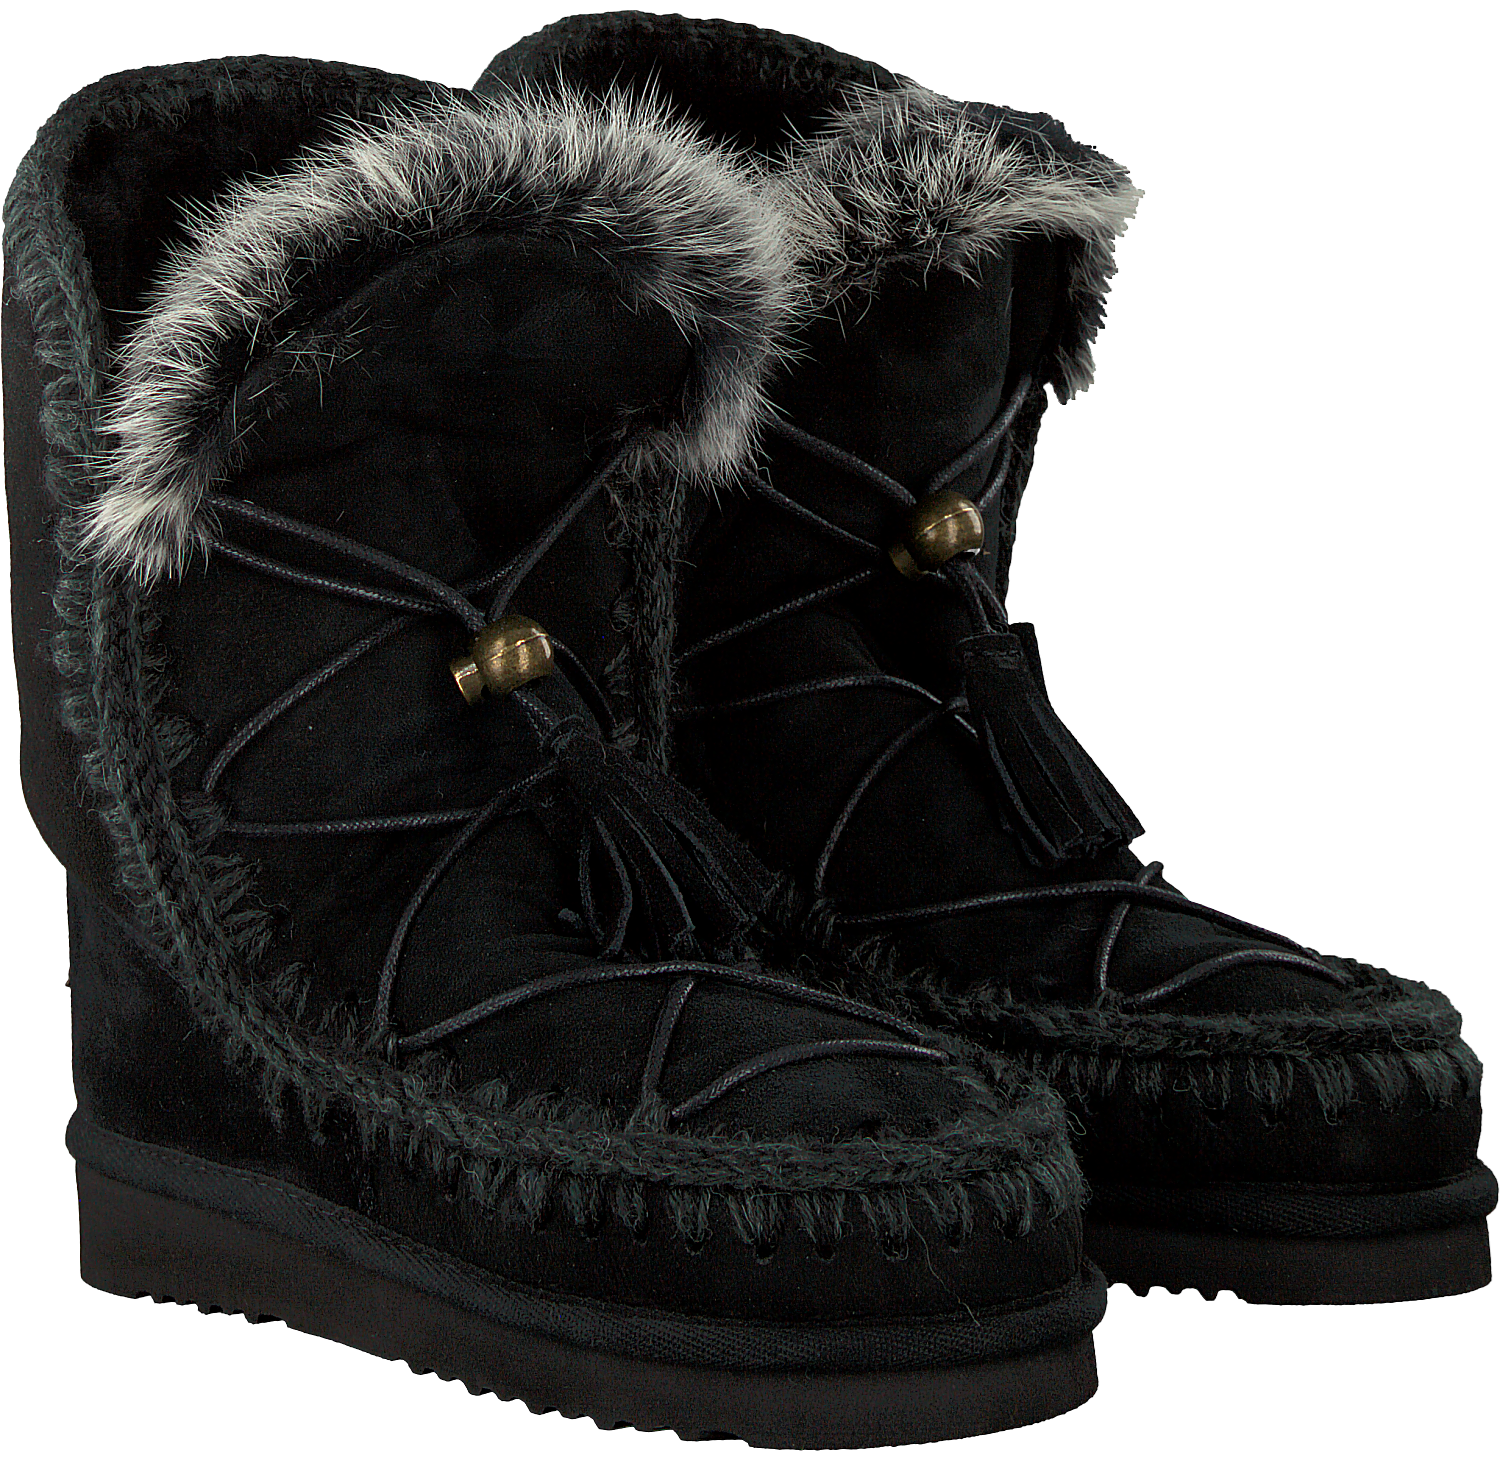 CATCHER UP fourrure DREAM Bottes ESKIMO R en MOU LACE noir WD9IH2EY